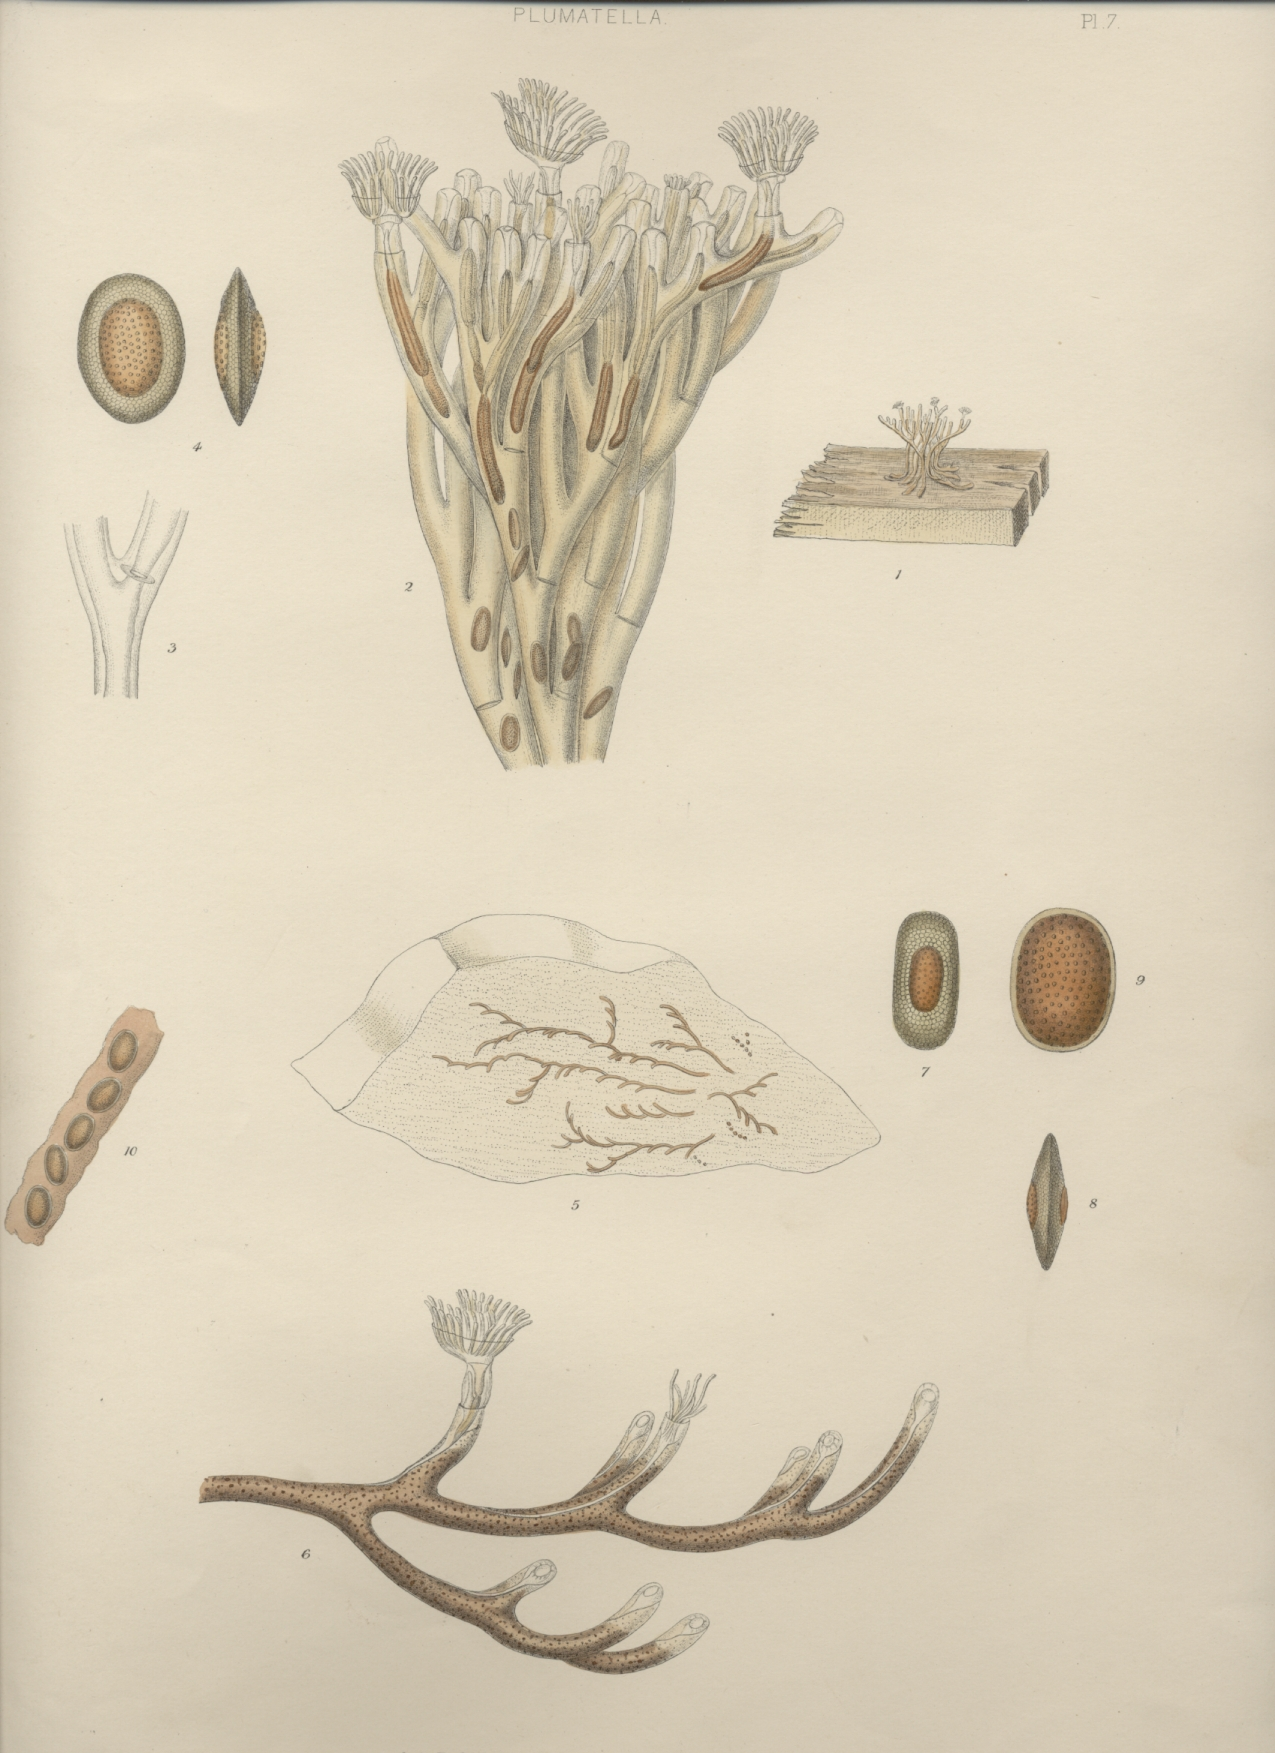 A monograph of the fresh-water polyzoa - plate 7